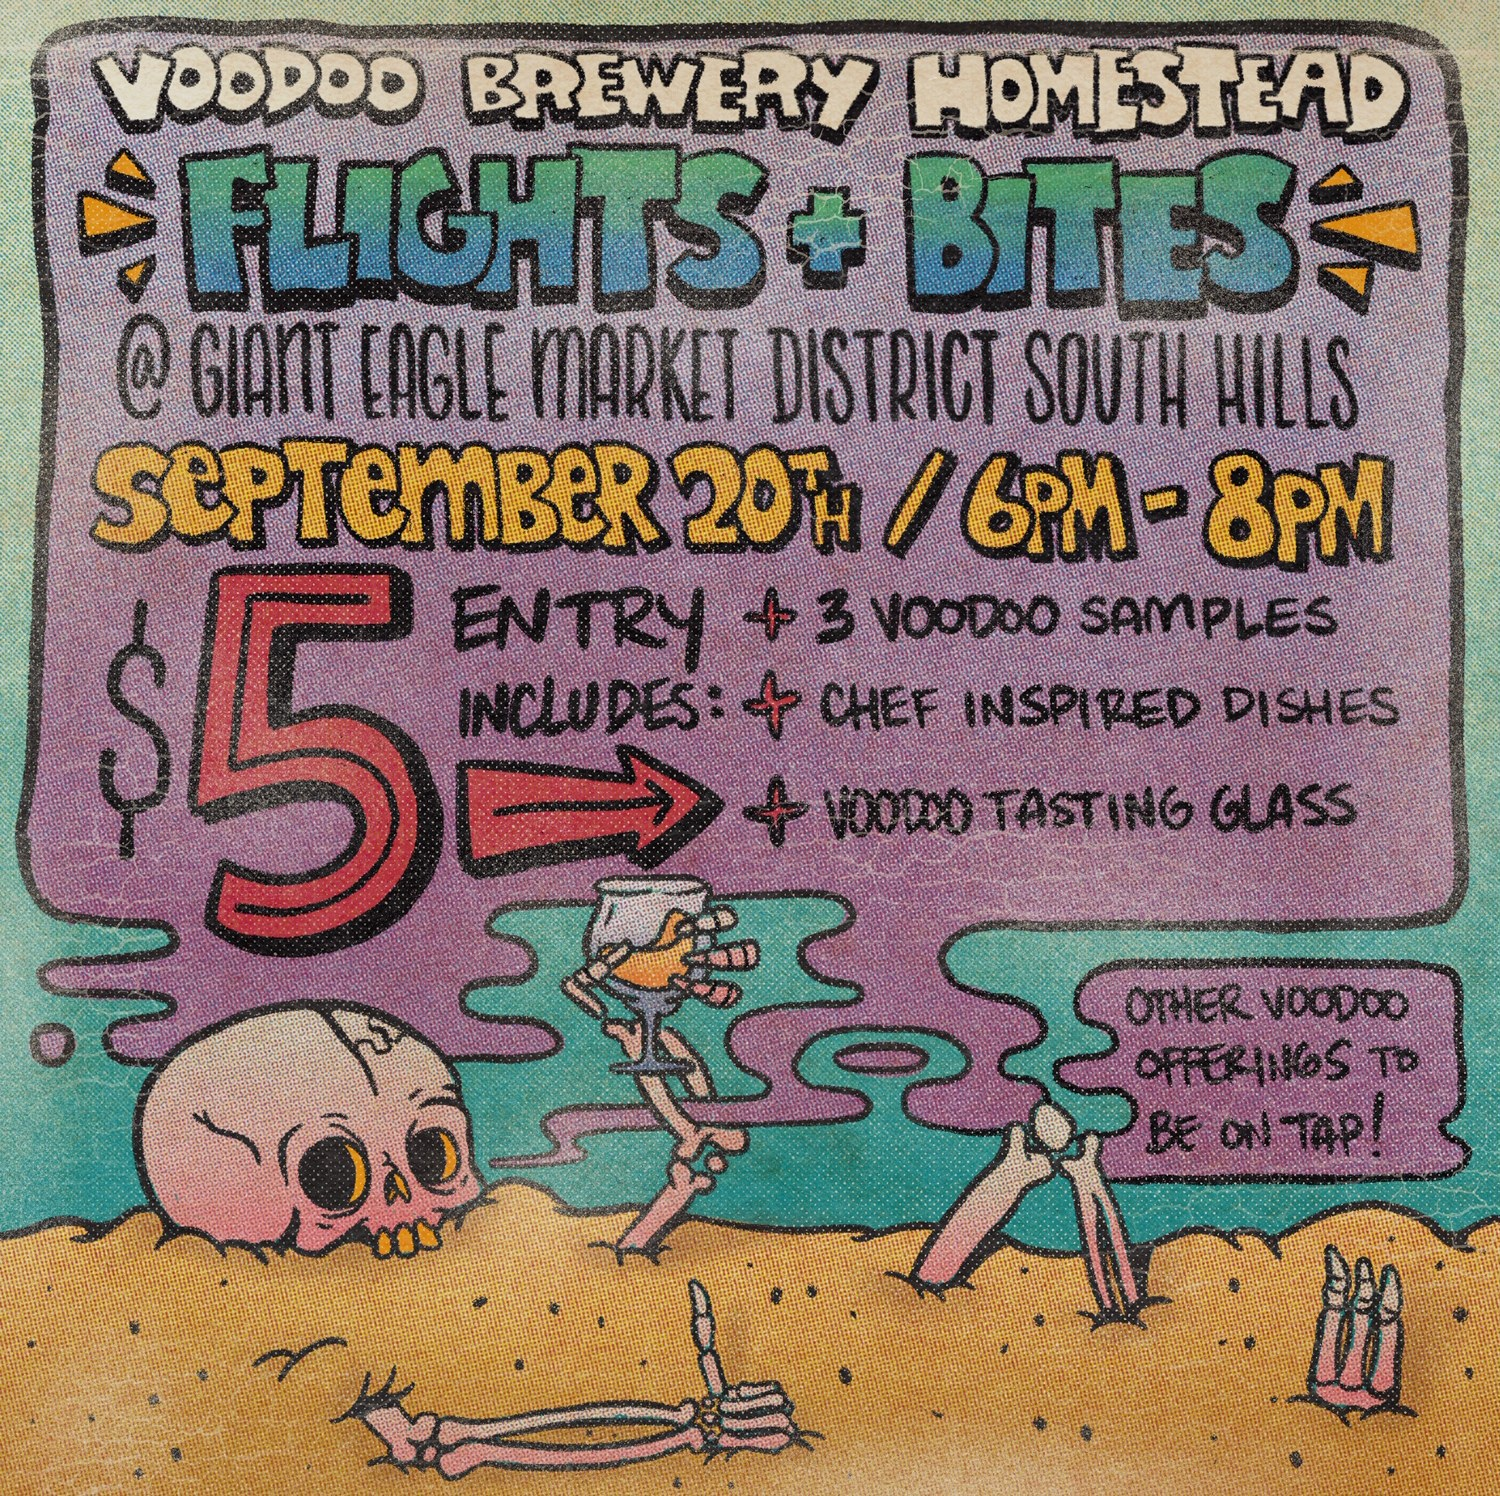 Flights and Bites with Voodoo Brewery at Giant Eagle South Hills! flyer